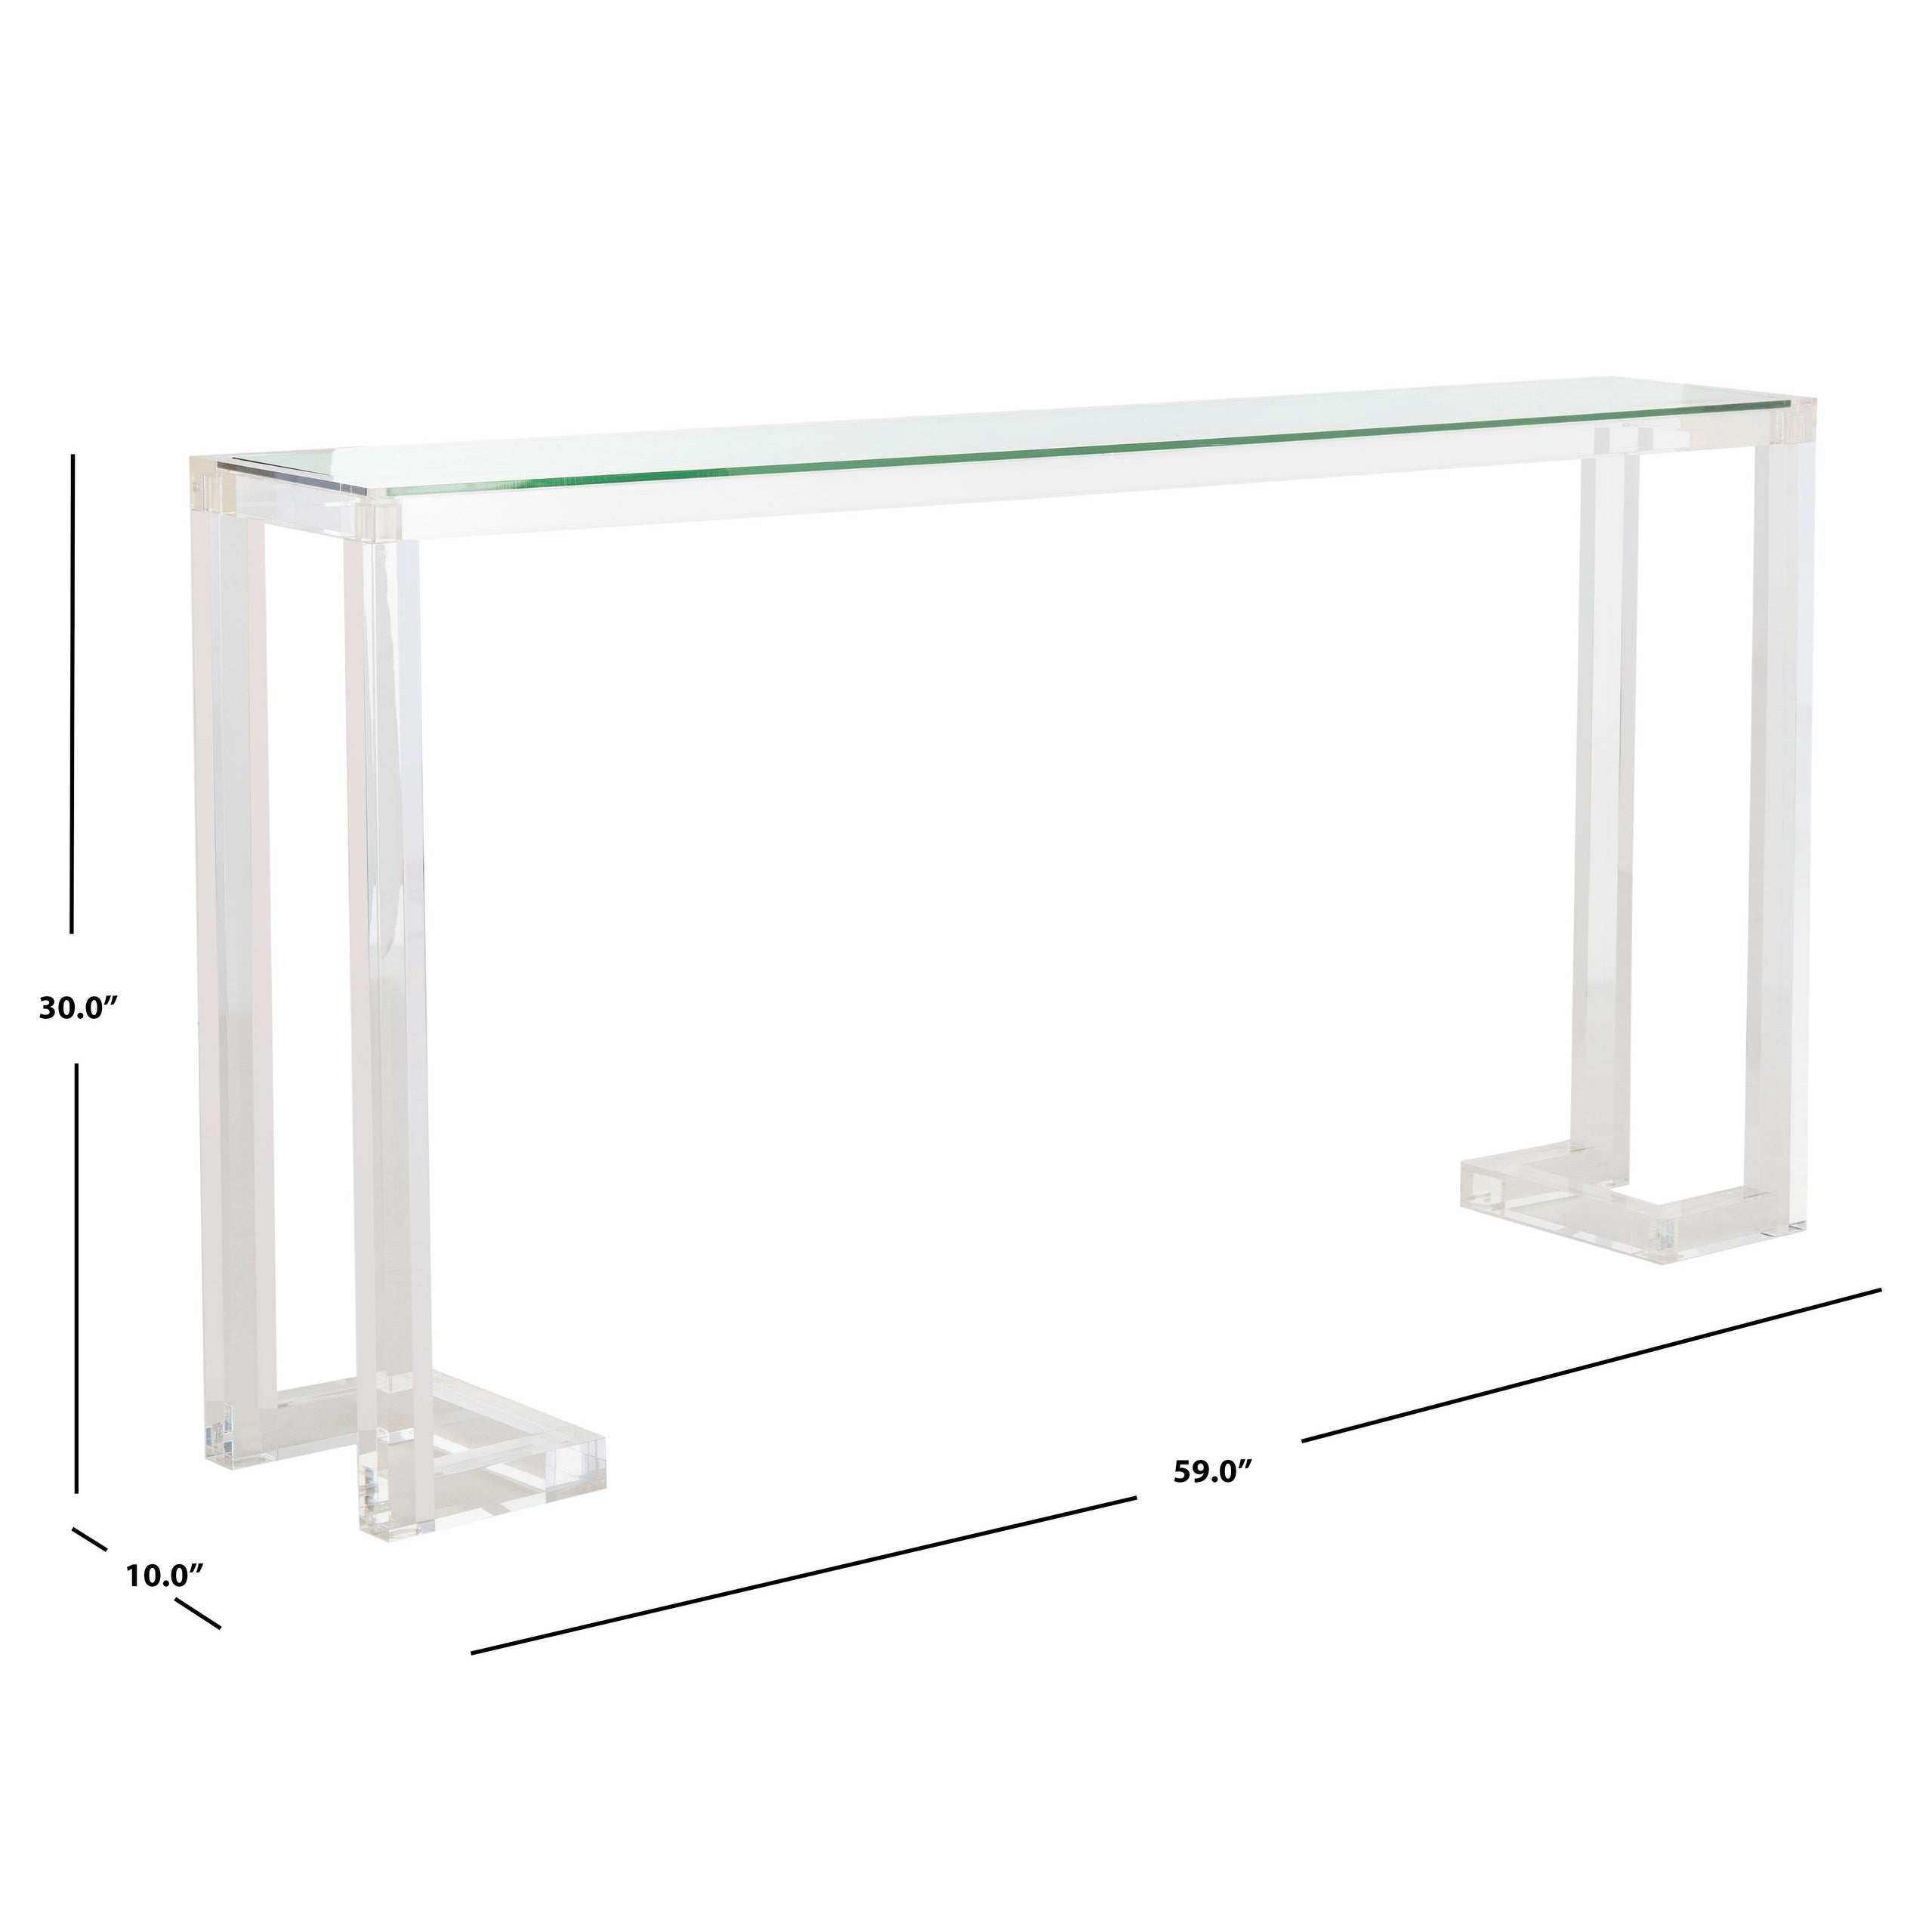 Outstanding Safavieh Couture Benji Acrylic Console Table Clear 60 X 10 X 30 Spiritservingveterans Wood Chair Design Ideas Spiritservingveteransorg